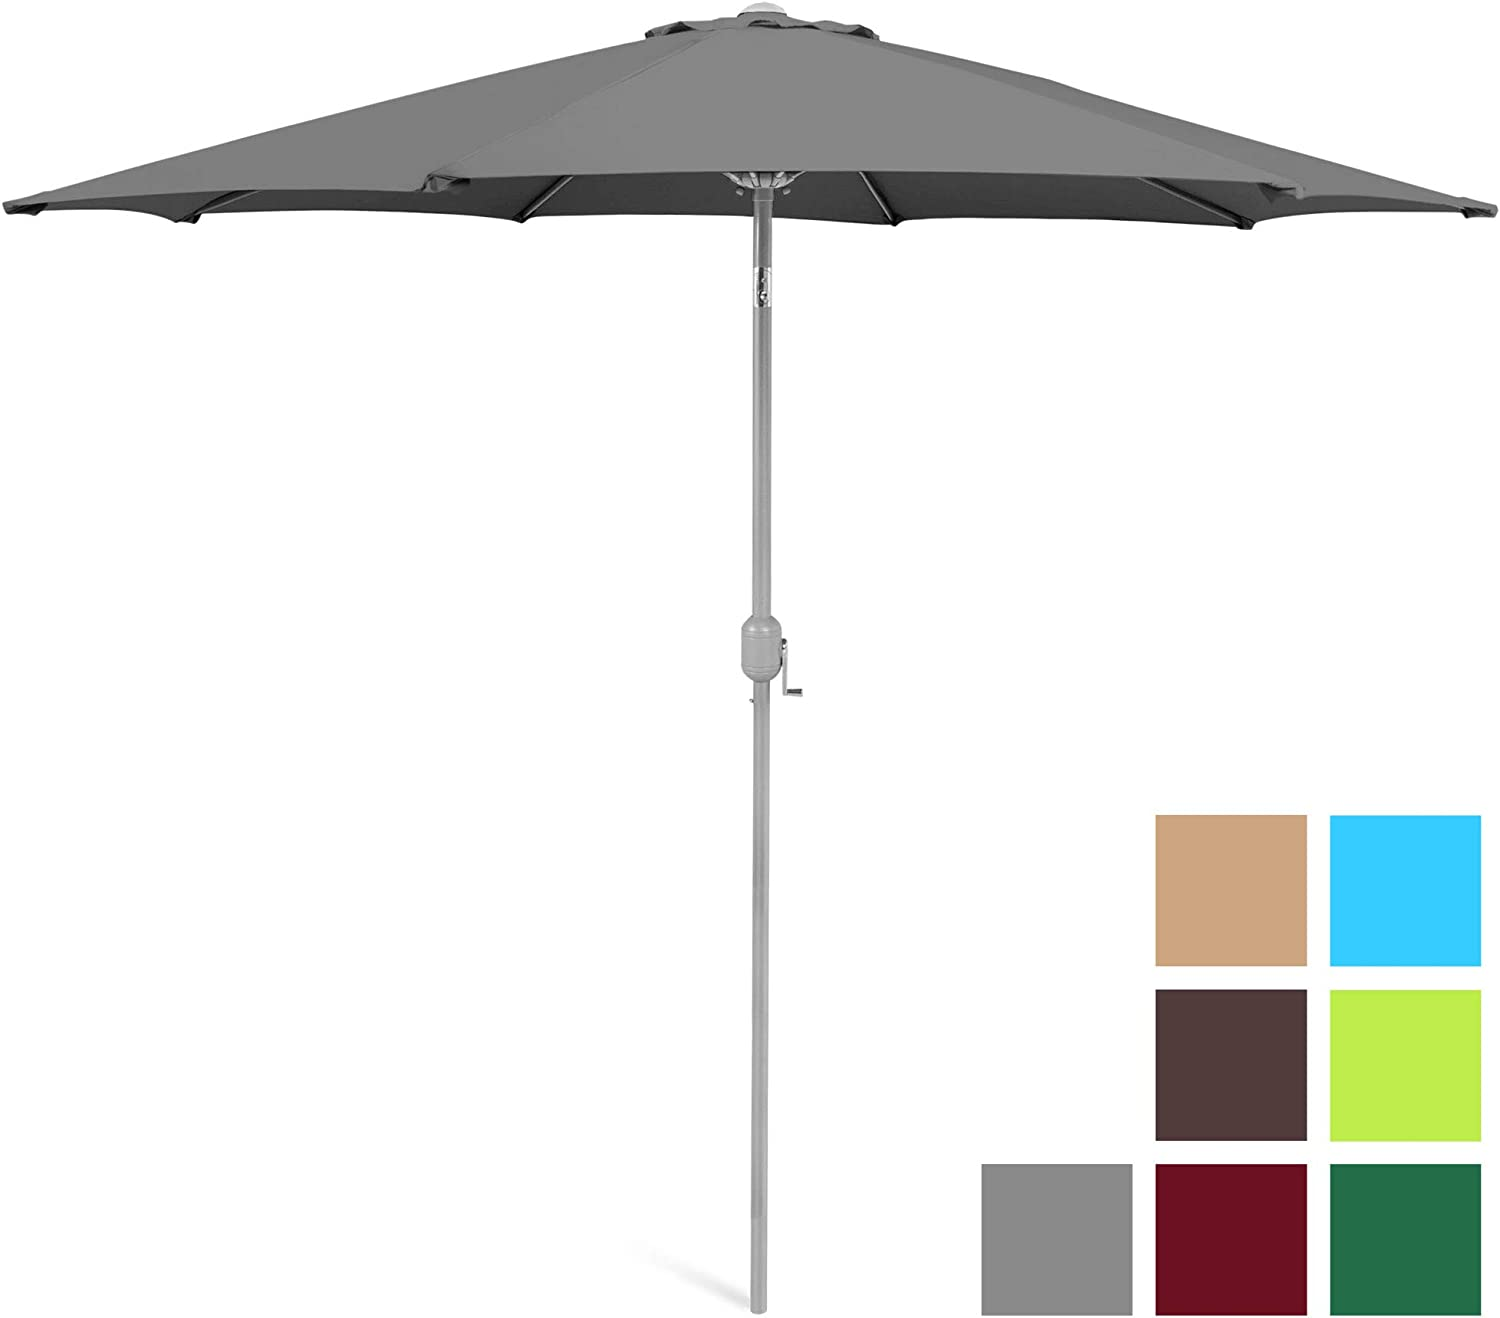 Best Choice Products 9ft Outdoor Market Patio Umbrella w Crank Tilt Adjustment, Wind Vent, 1.5in Diameter Pole – Gray